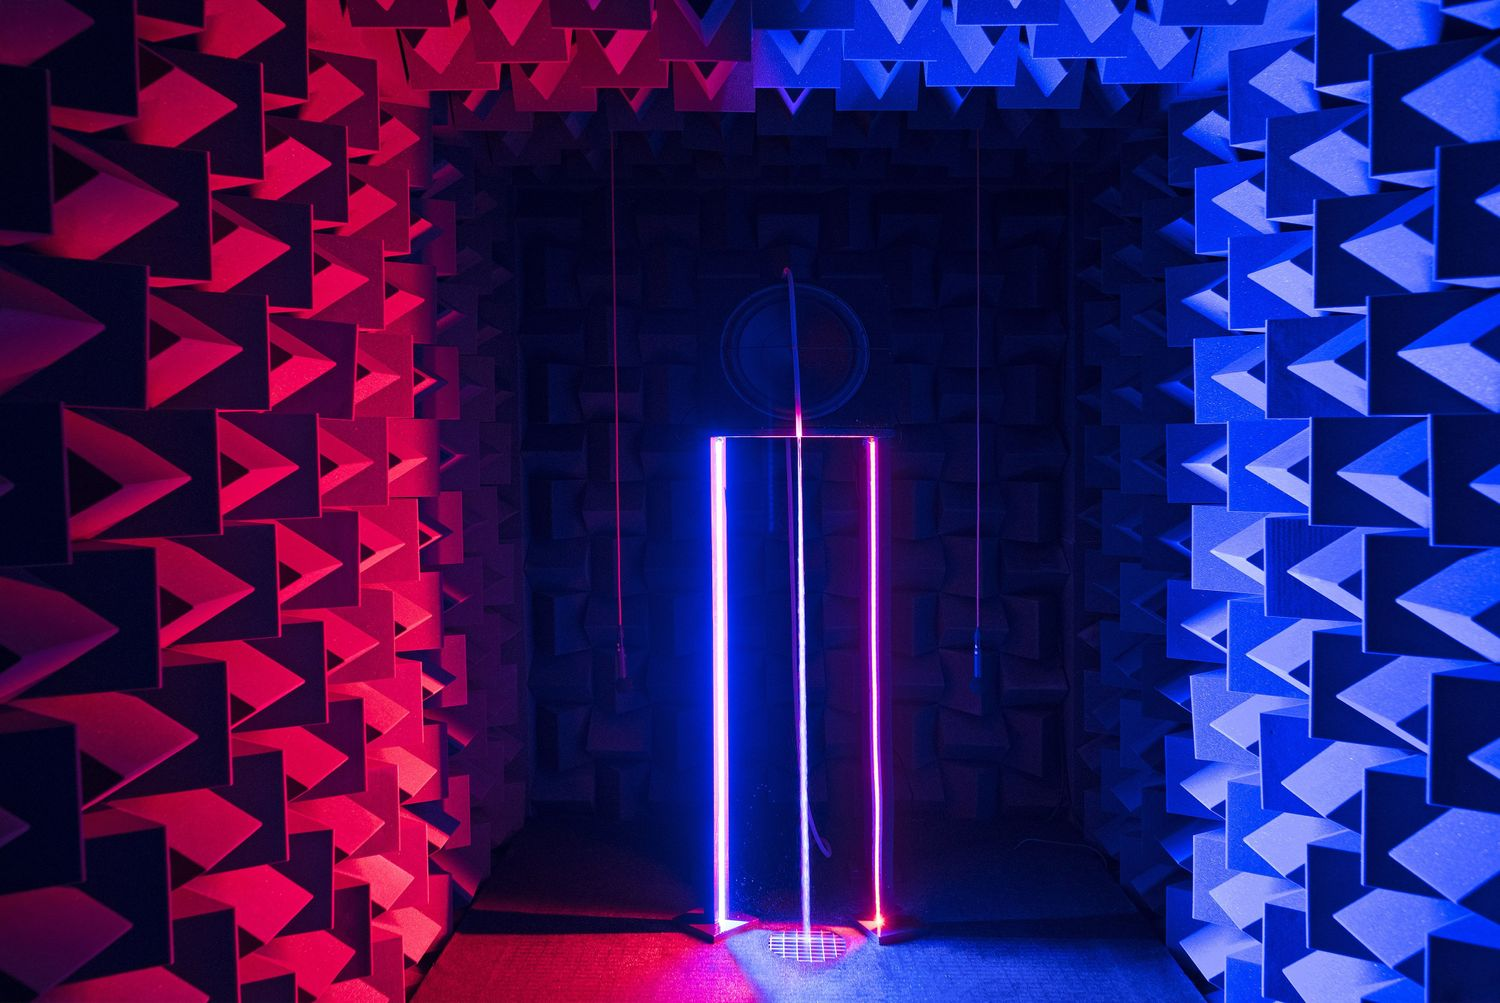 Haroon Mirza, /// ///, 2017. Installation view, Dancing with the Unknown, Nikolaj Kunsthal, Copenhagen, 2018 Courtesy: hrm199 and Nikolaj Kunsthal. Photographer: Per Wessel